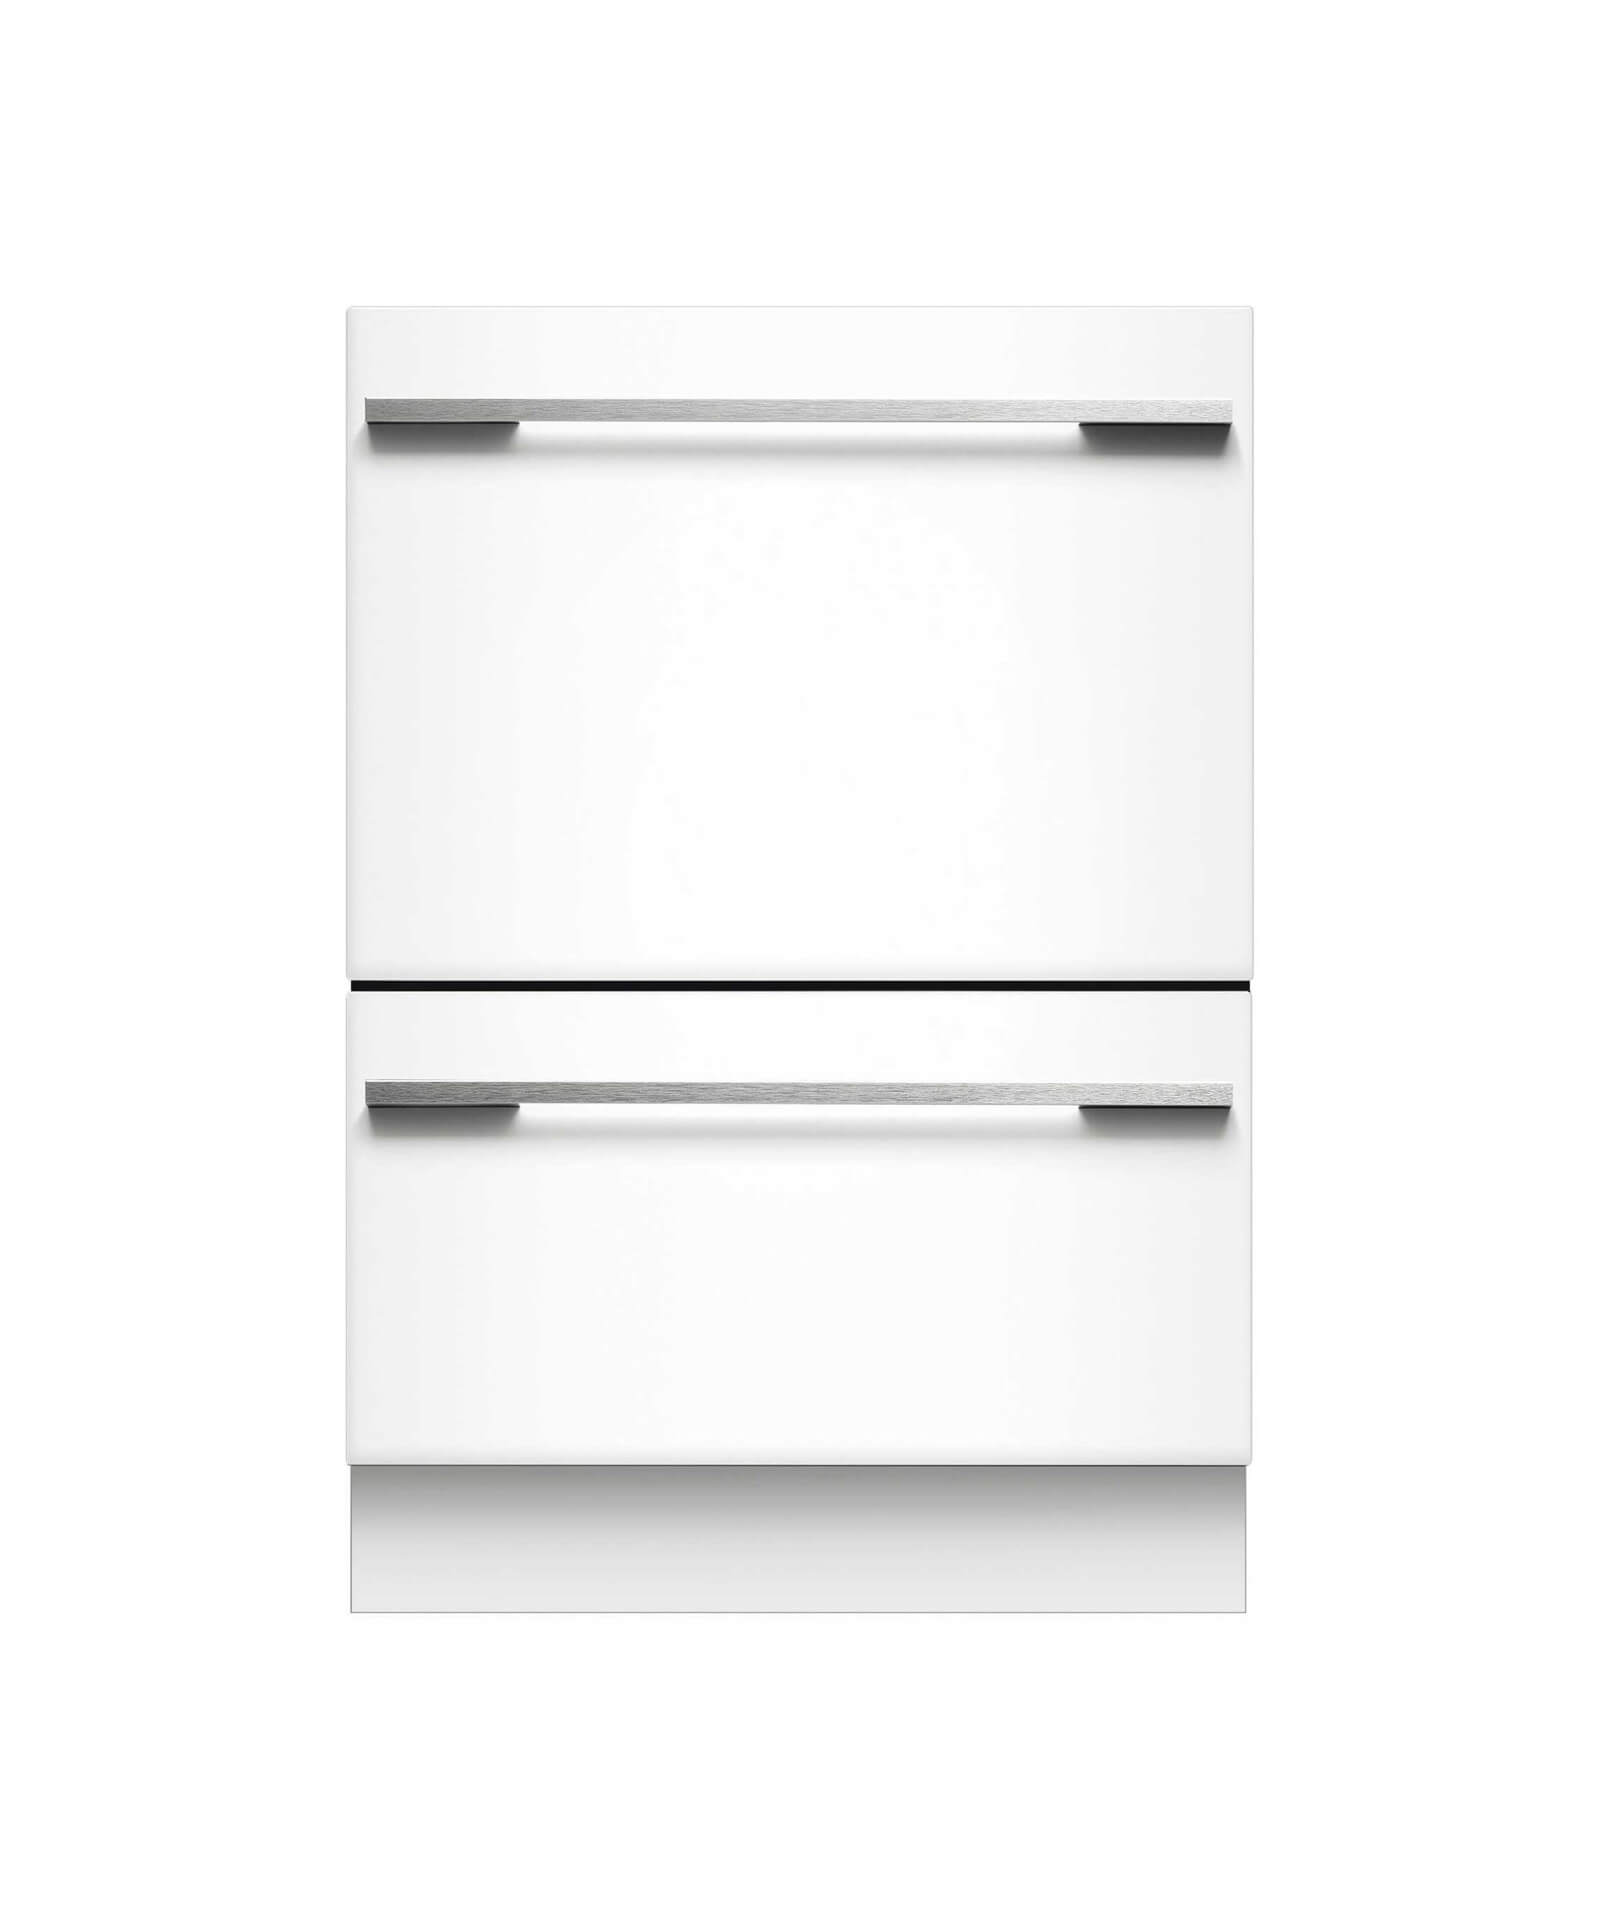 Fisher & Paykel Panel Ready DishDrawer™ Tall Double Dishwasher DD24DTI7